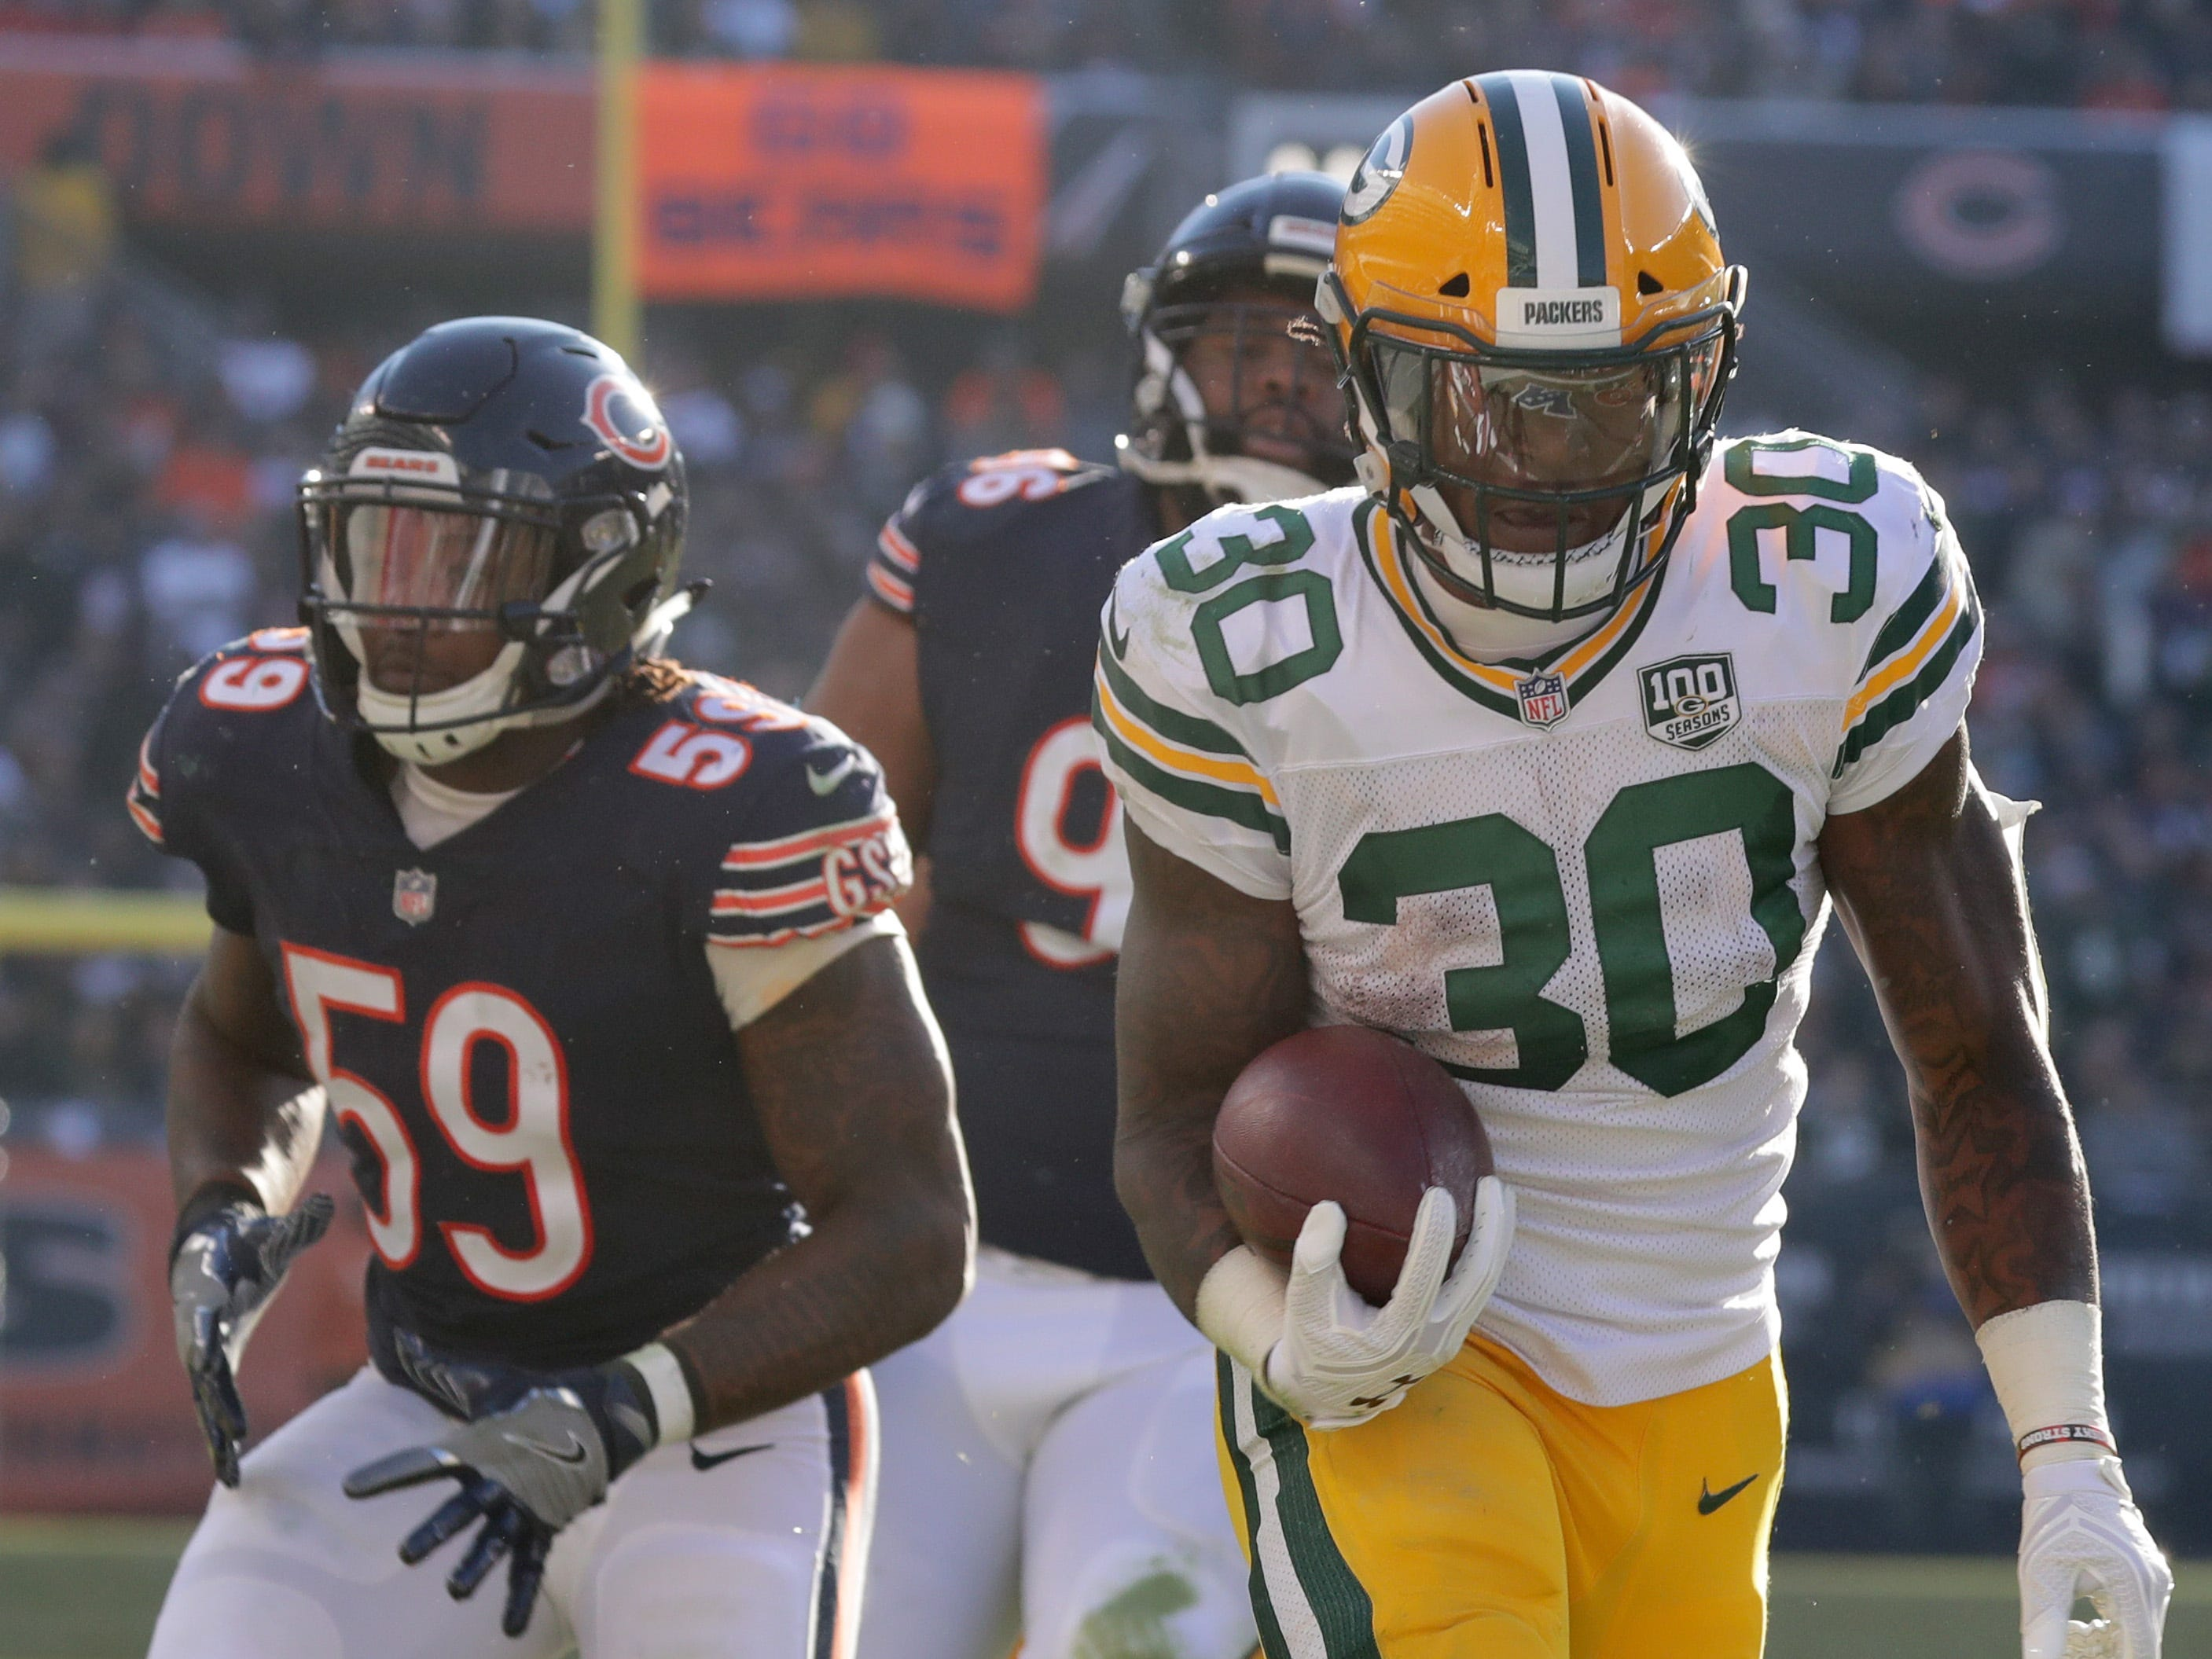 Green Bay Packers running back Jamaal Williams (30) scores a touchdown on a 10-yard run during the third  quarter of their game against the Chicago Bears Sunday, December 25, 2018 at Soldier Field in Chicago, Ill. The Chicago Bears beat the Green Bay Packers 24-17.  MARK HOFFMAN/MILWAUKEE JOURNAL SENTINEL